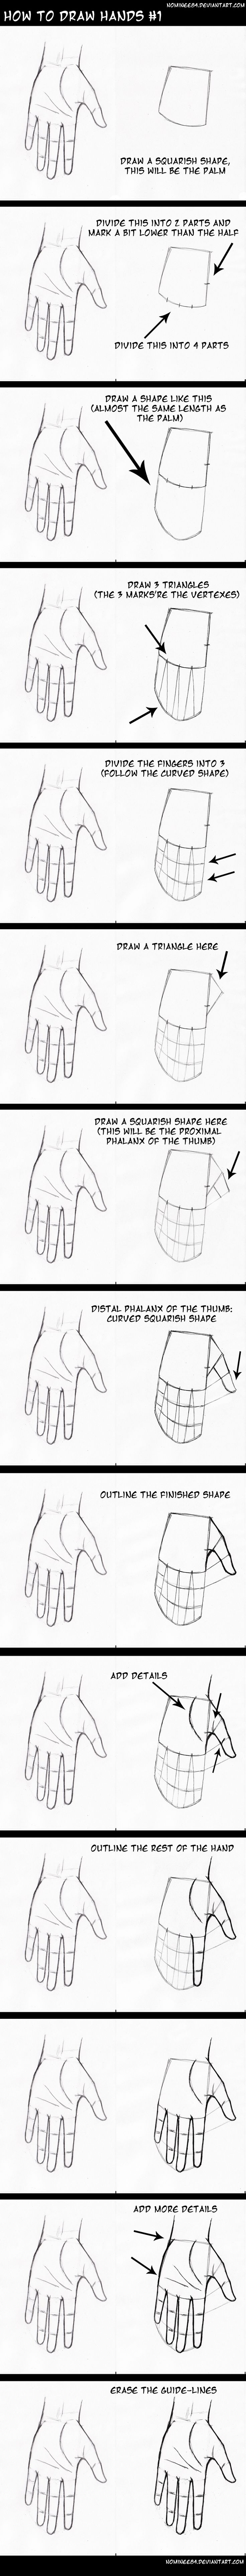 how to draw hands1 by nominee84 on DeviantArt